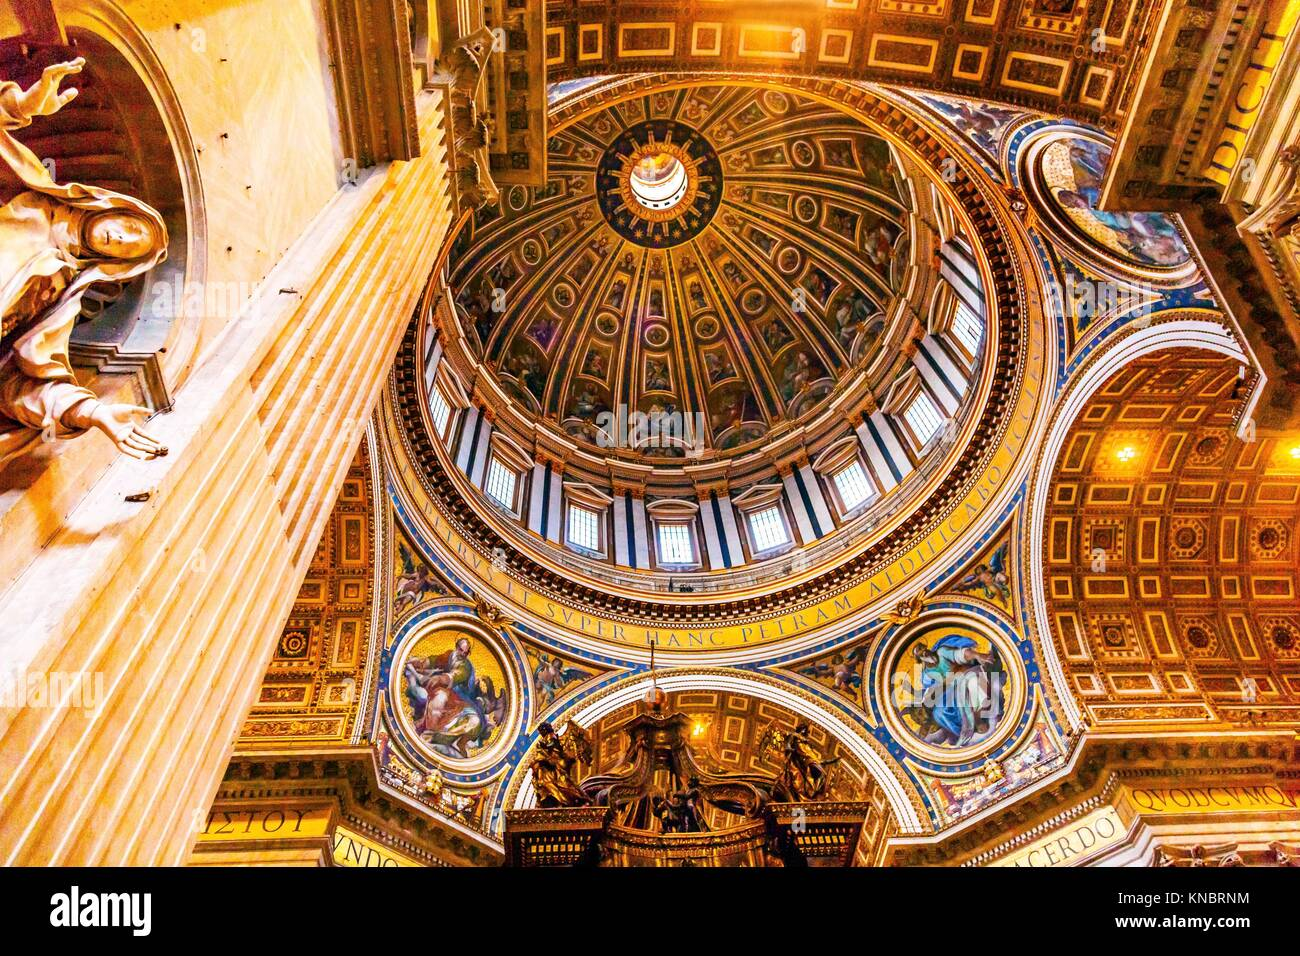 Mary Statue Michelangeolo Dome Saint Peter's Basilica Vatican Rome Italy. Dome built in 1600s over altar and - Stock Image